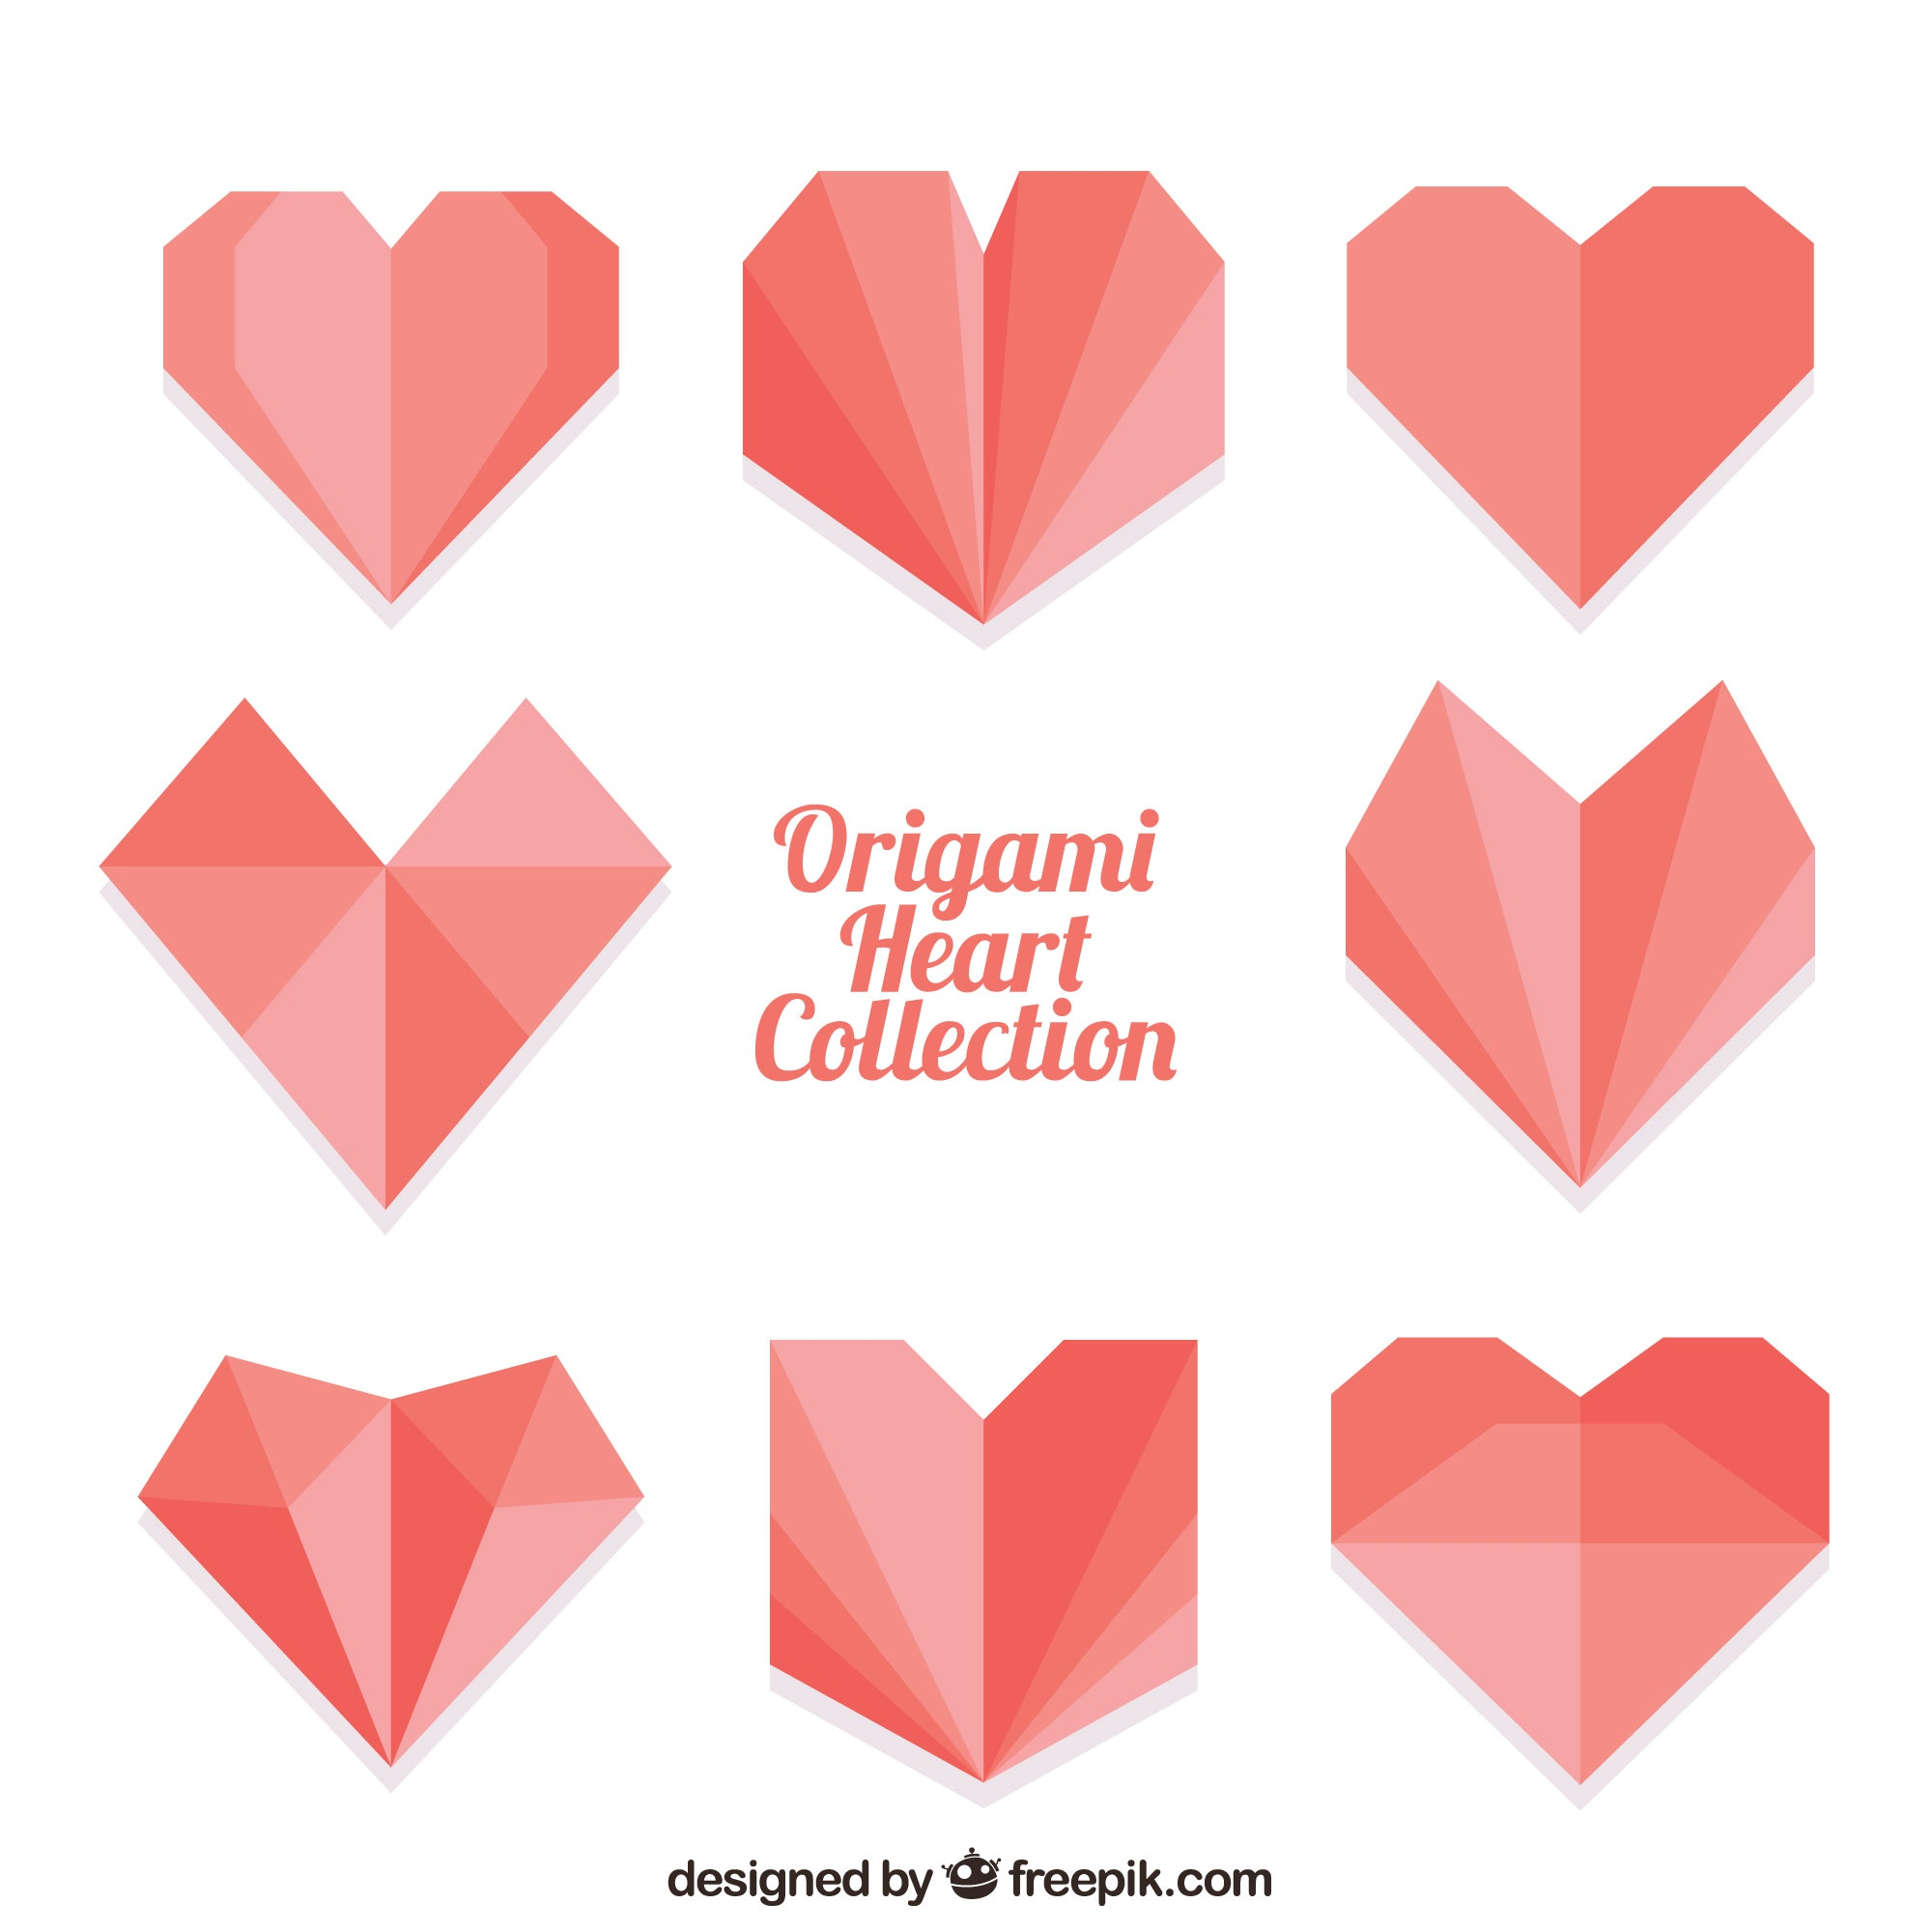 Origami collection with hearts in flat design